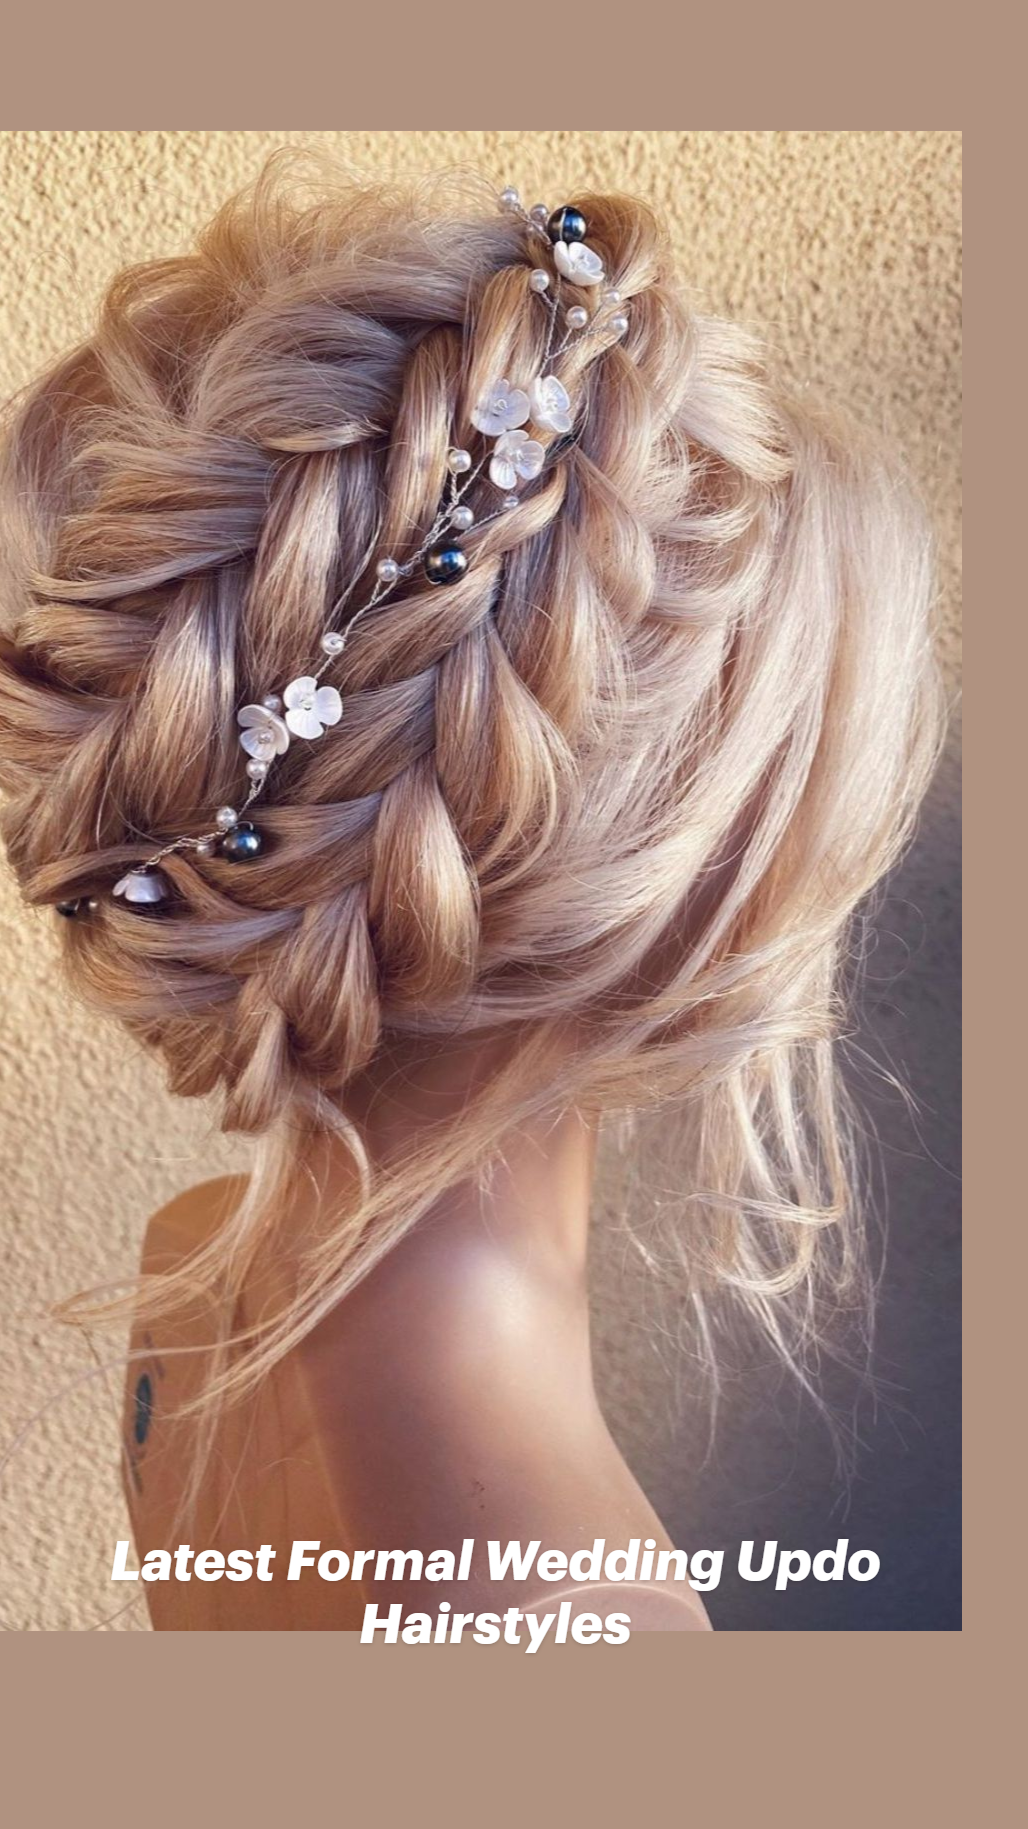 Latest Formal Wedding Updo Hairstyles